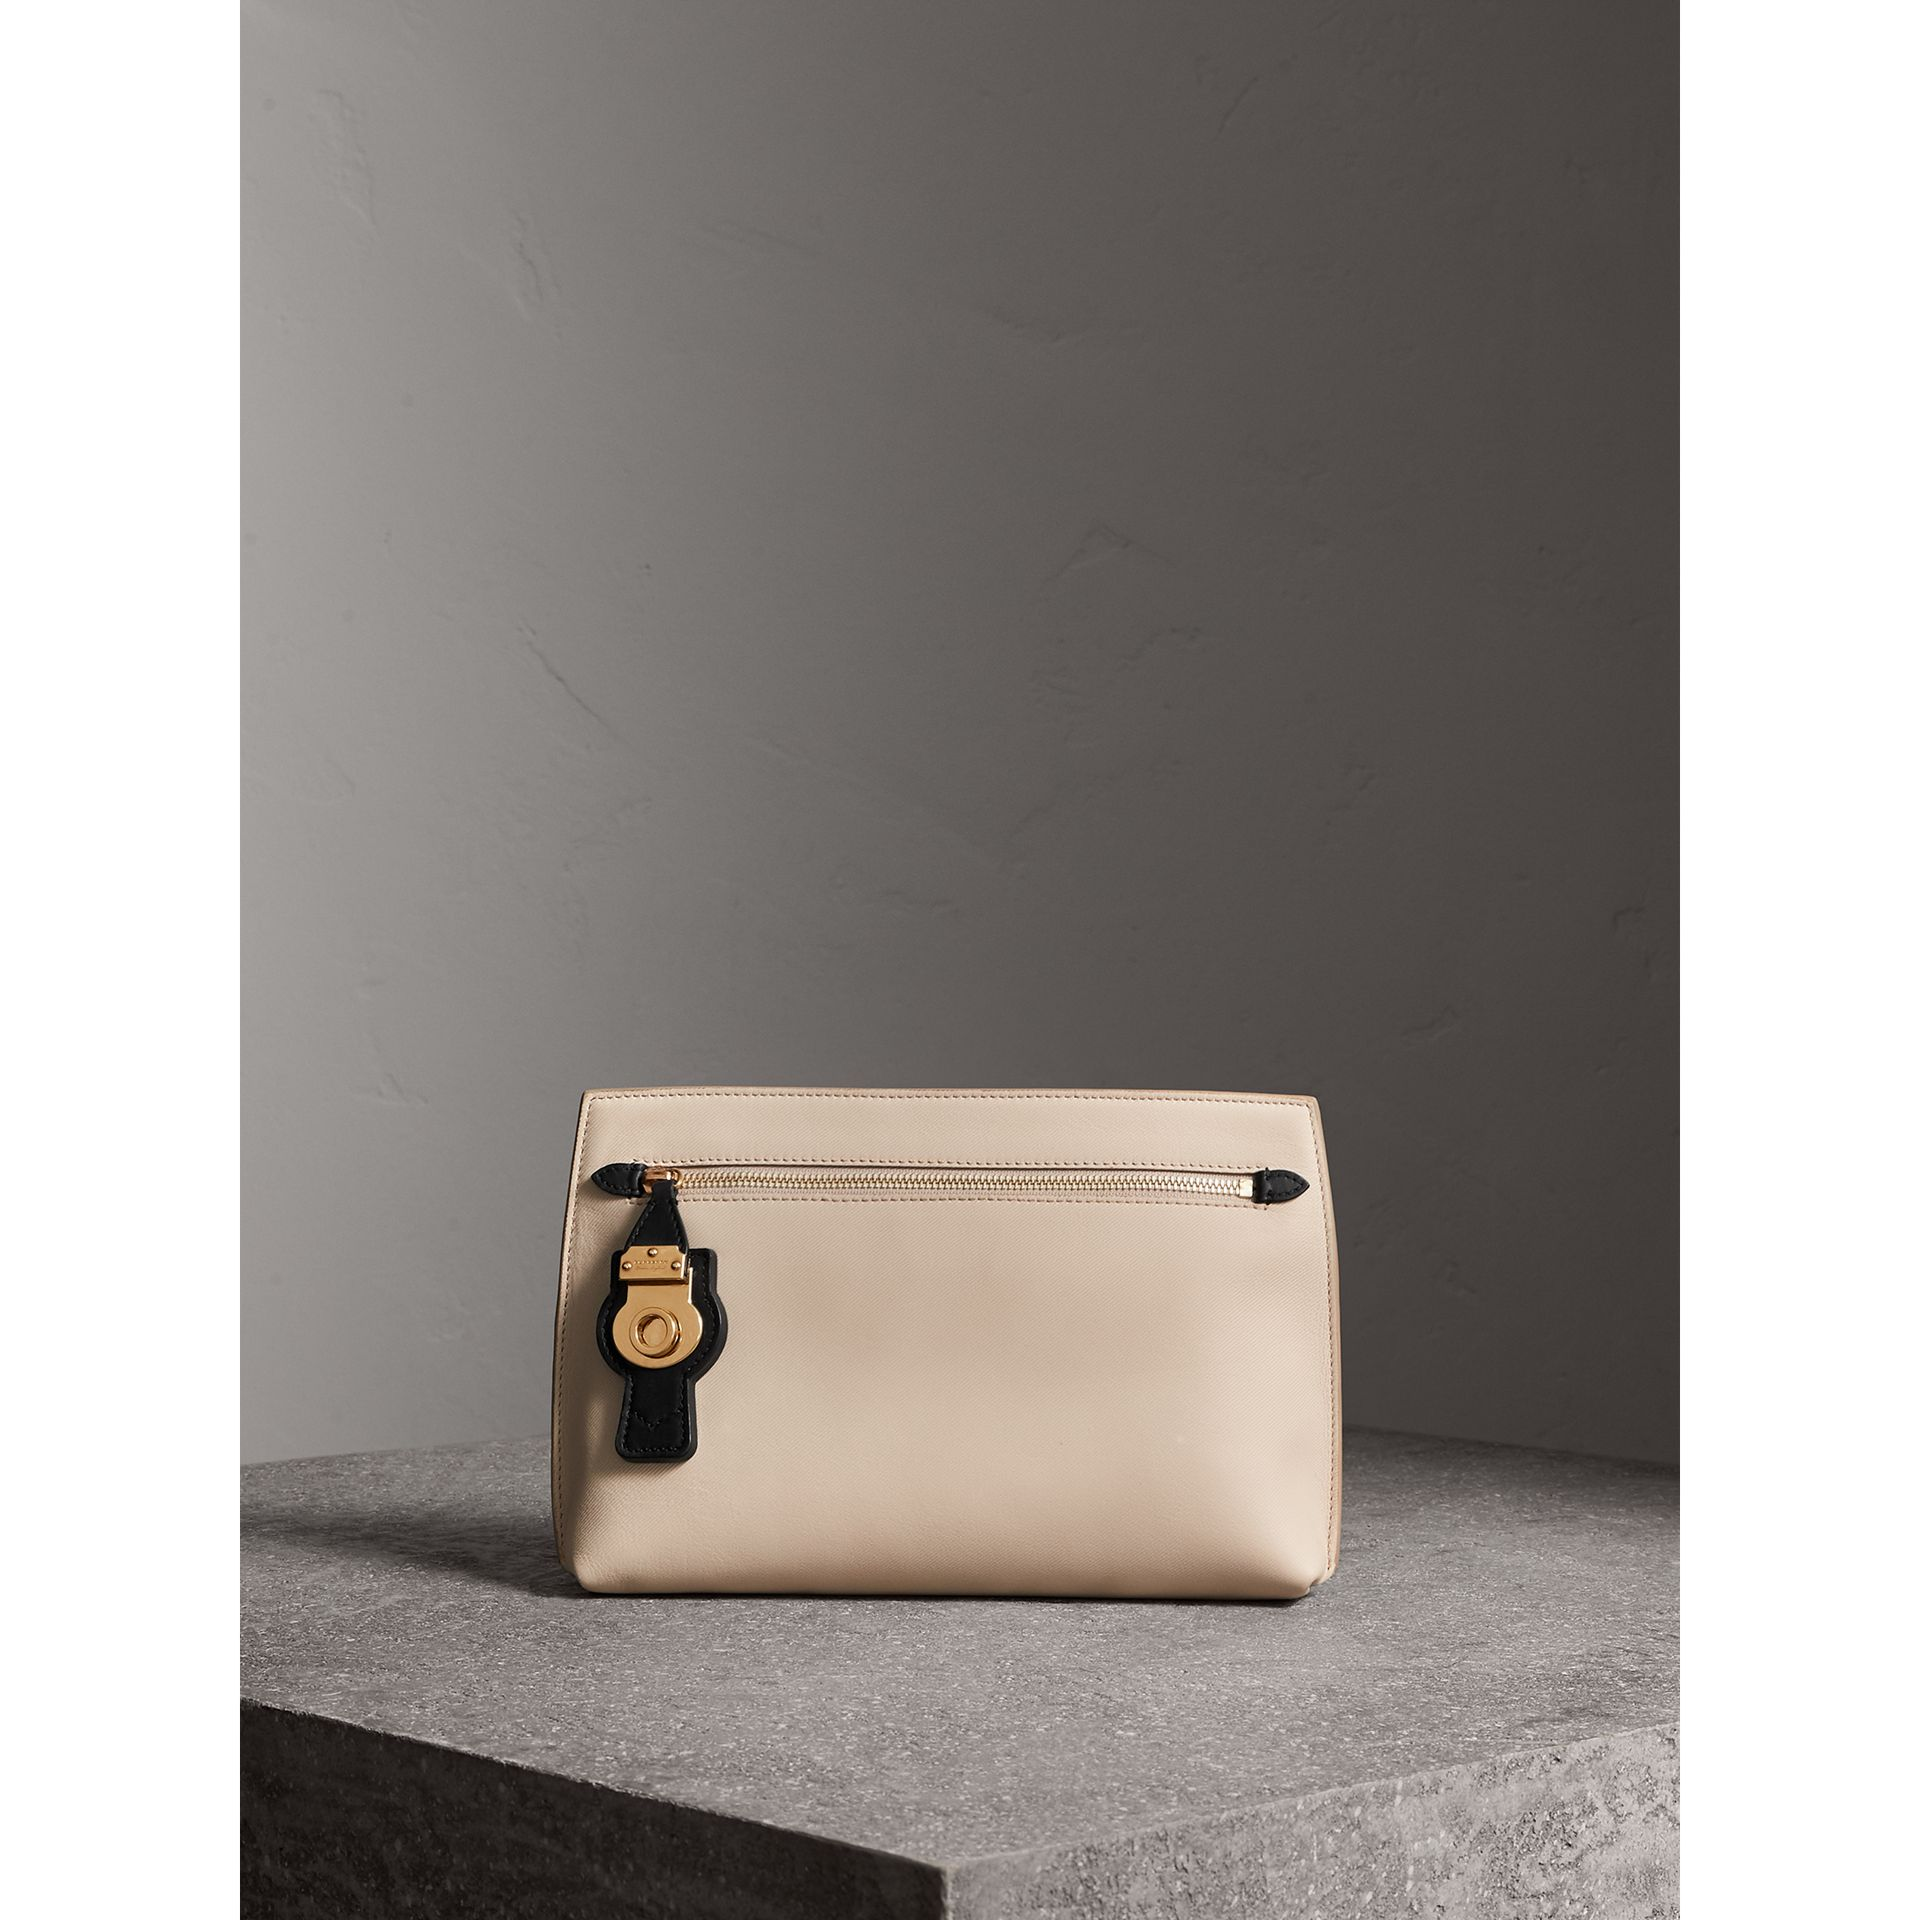 Two-tone Trench Leather Wristlet Pouch in Limestone/black - Women | Burberry United States - gallery image 0